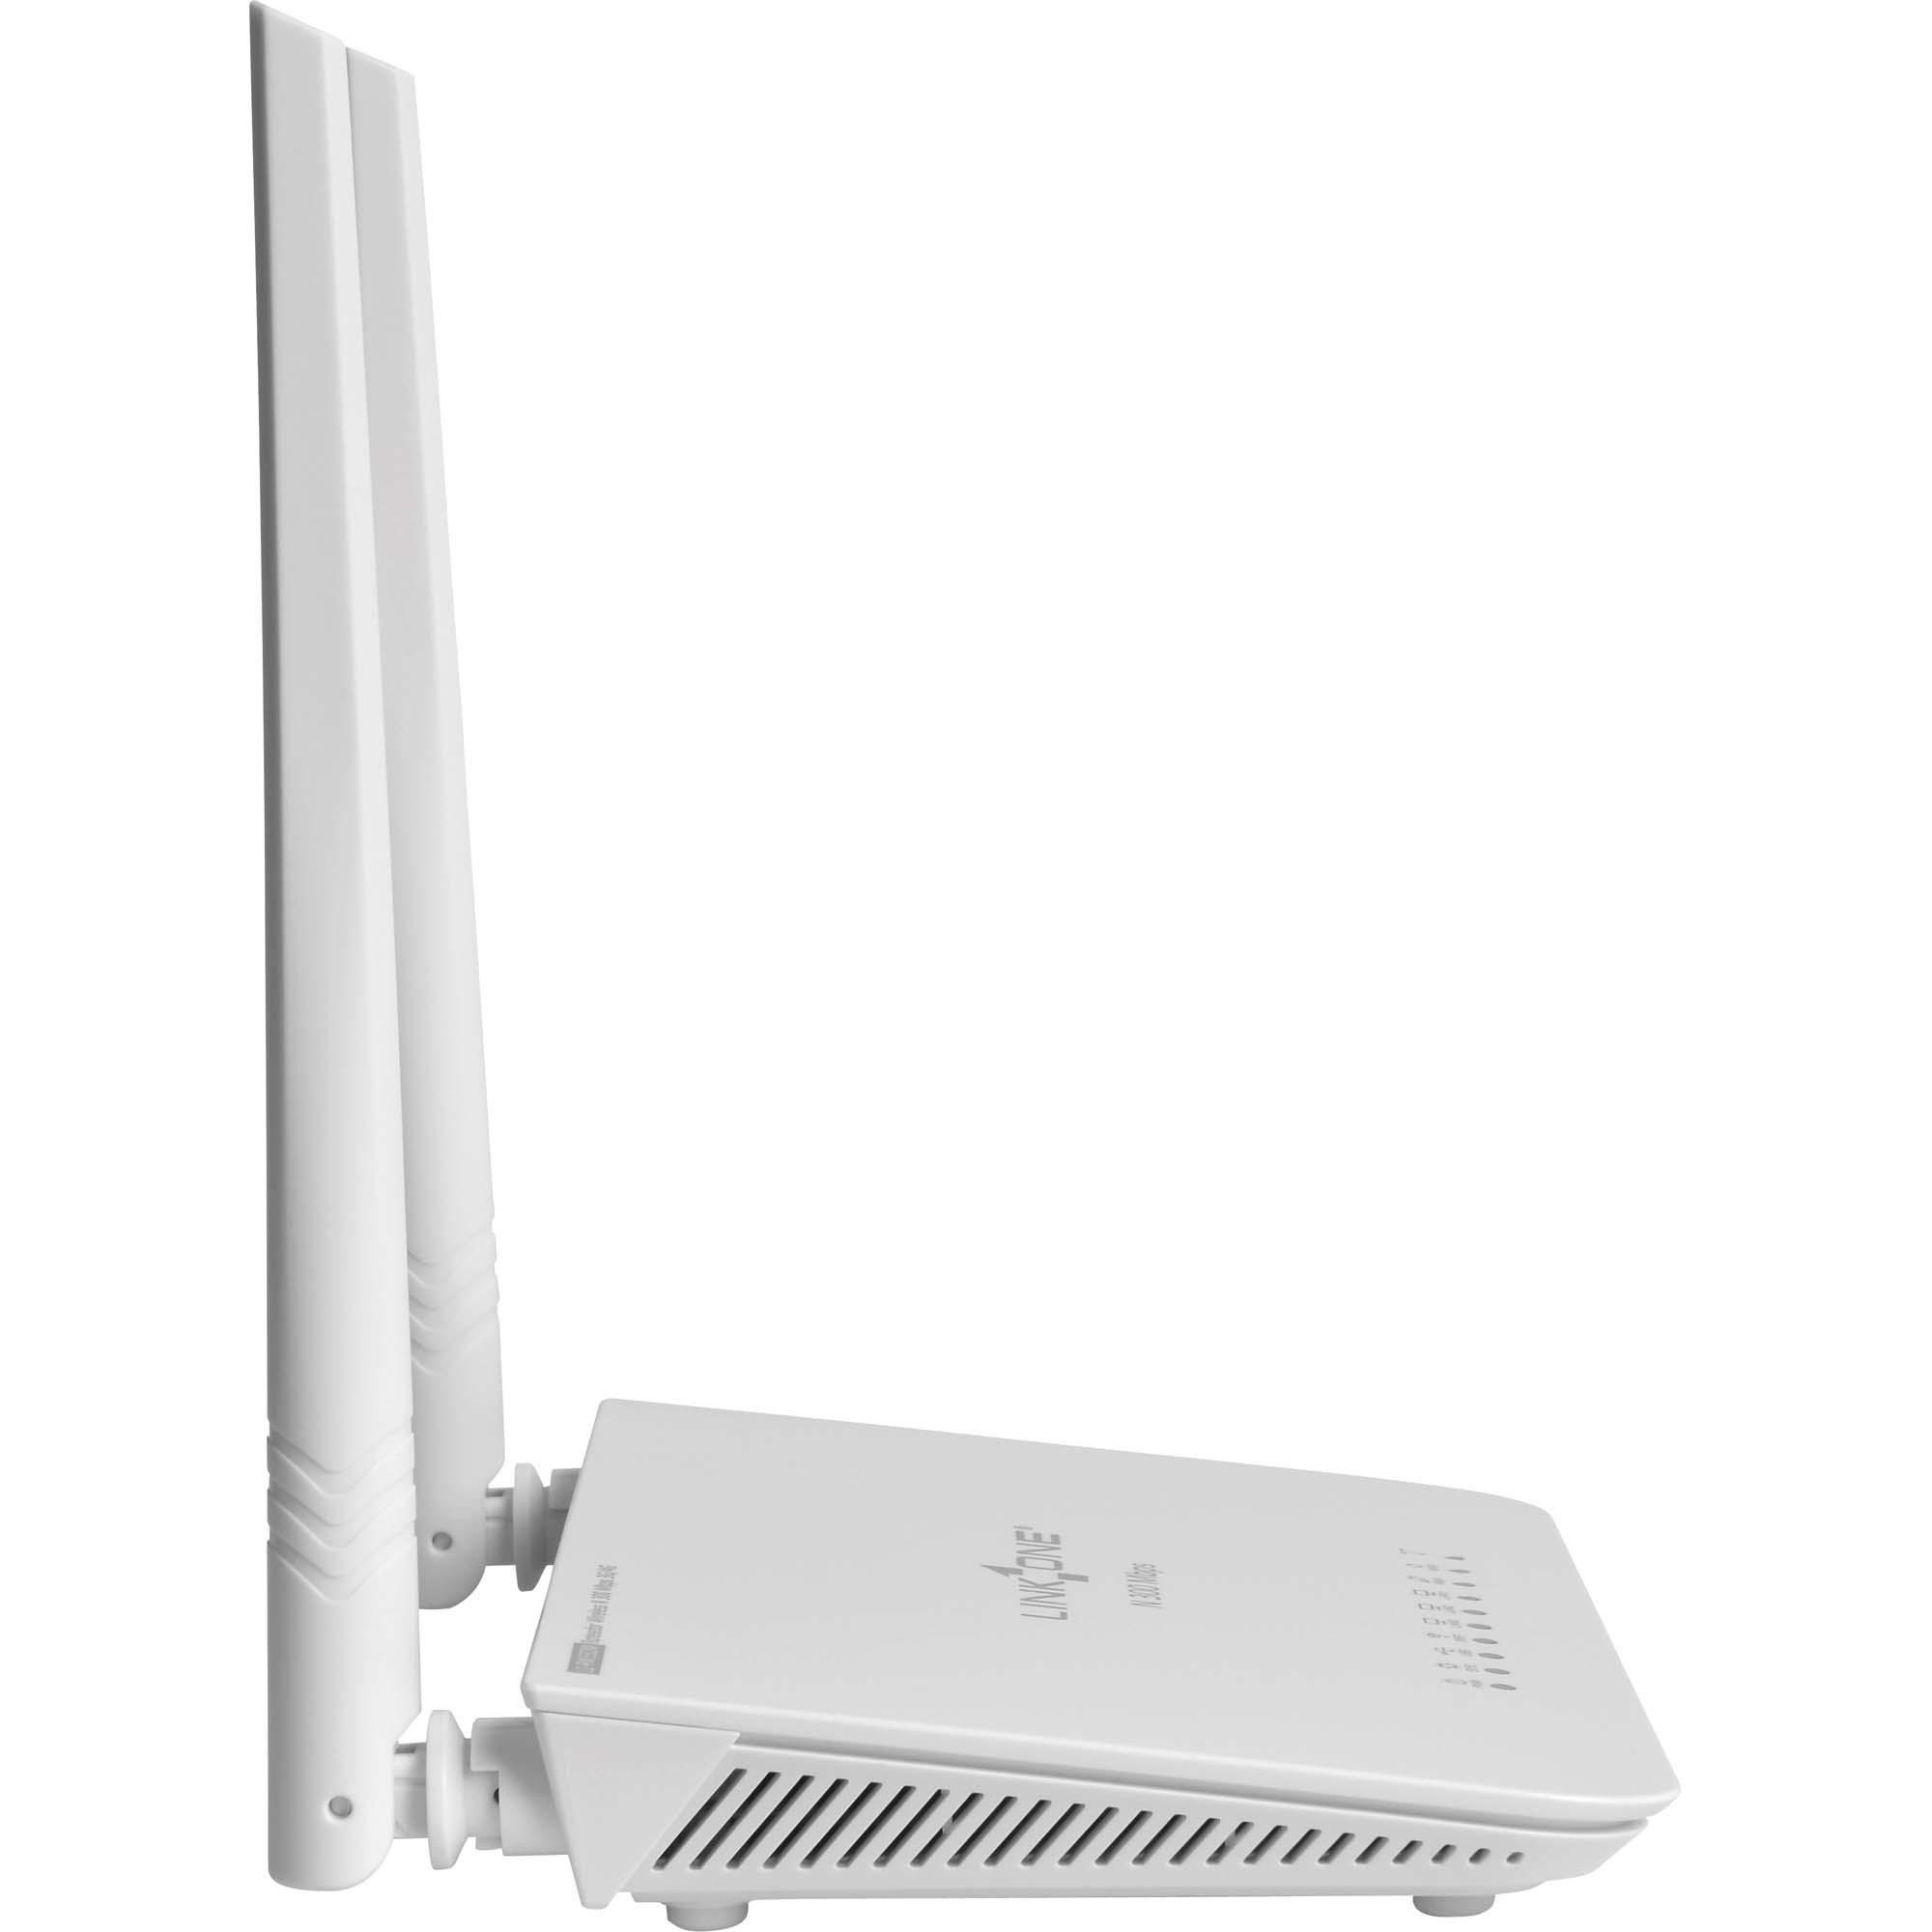 Roteador Wireless 300Mbps 2 Antenas 5dbi Link One RW332M 3G/4G